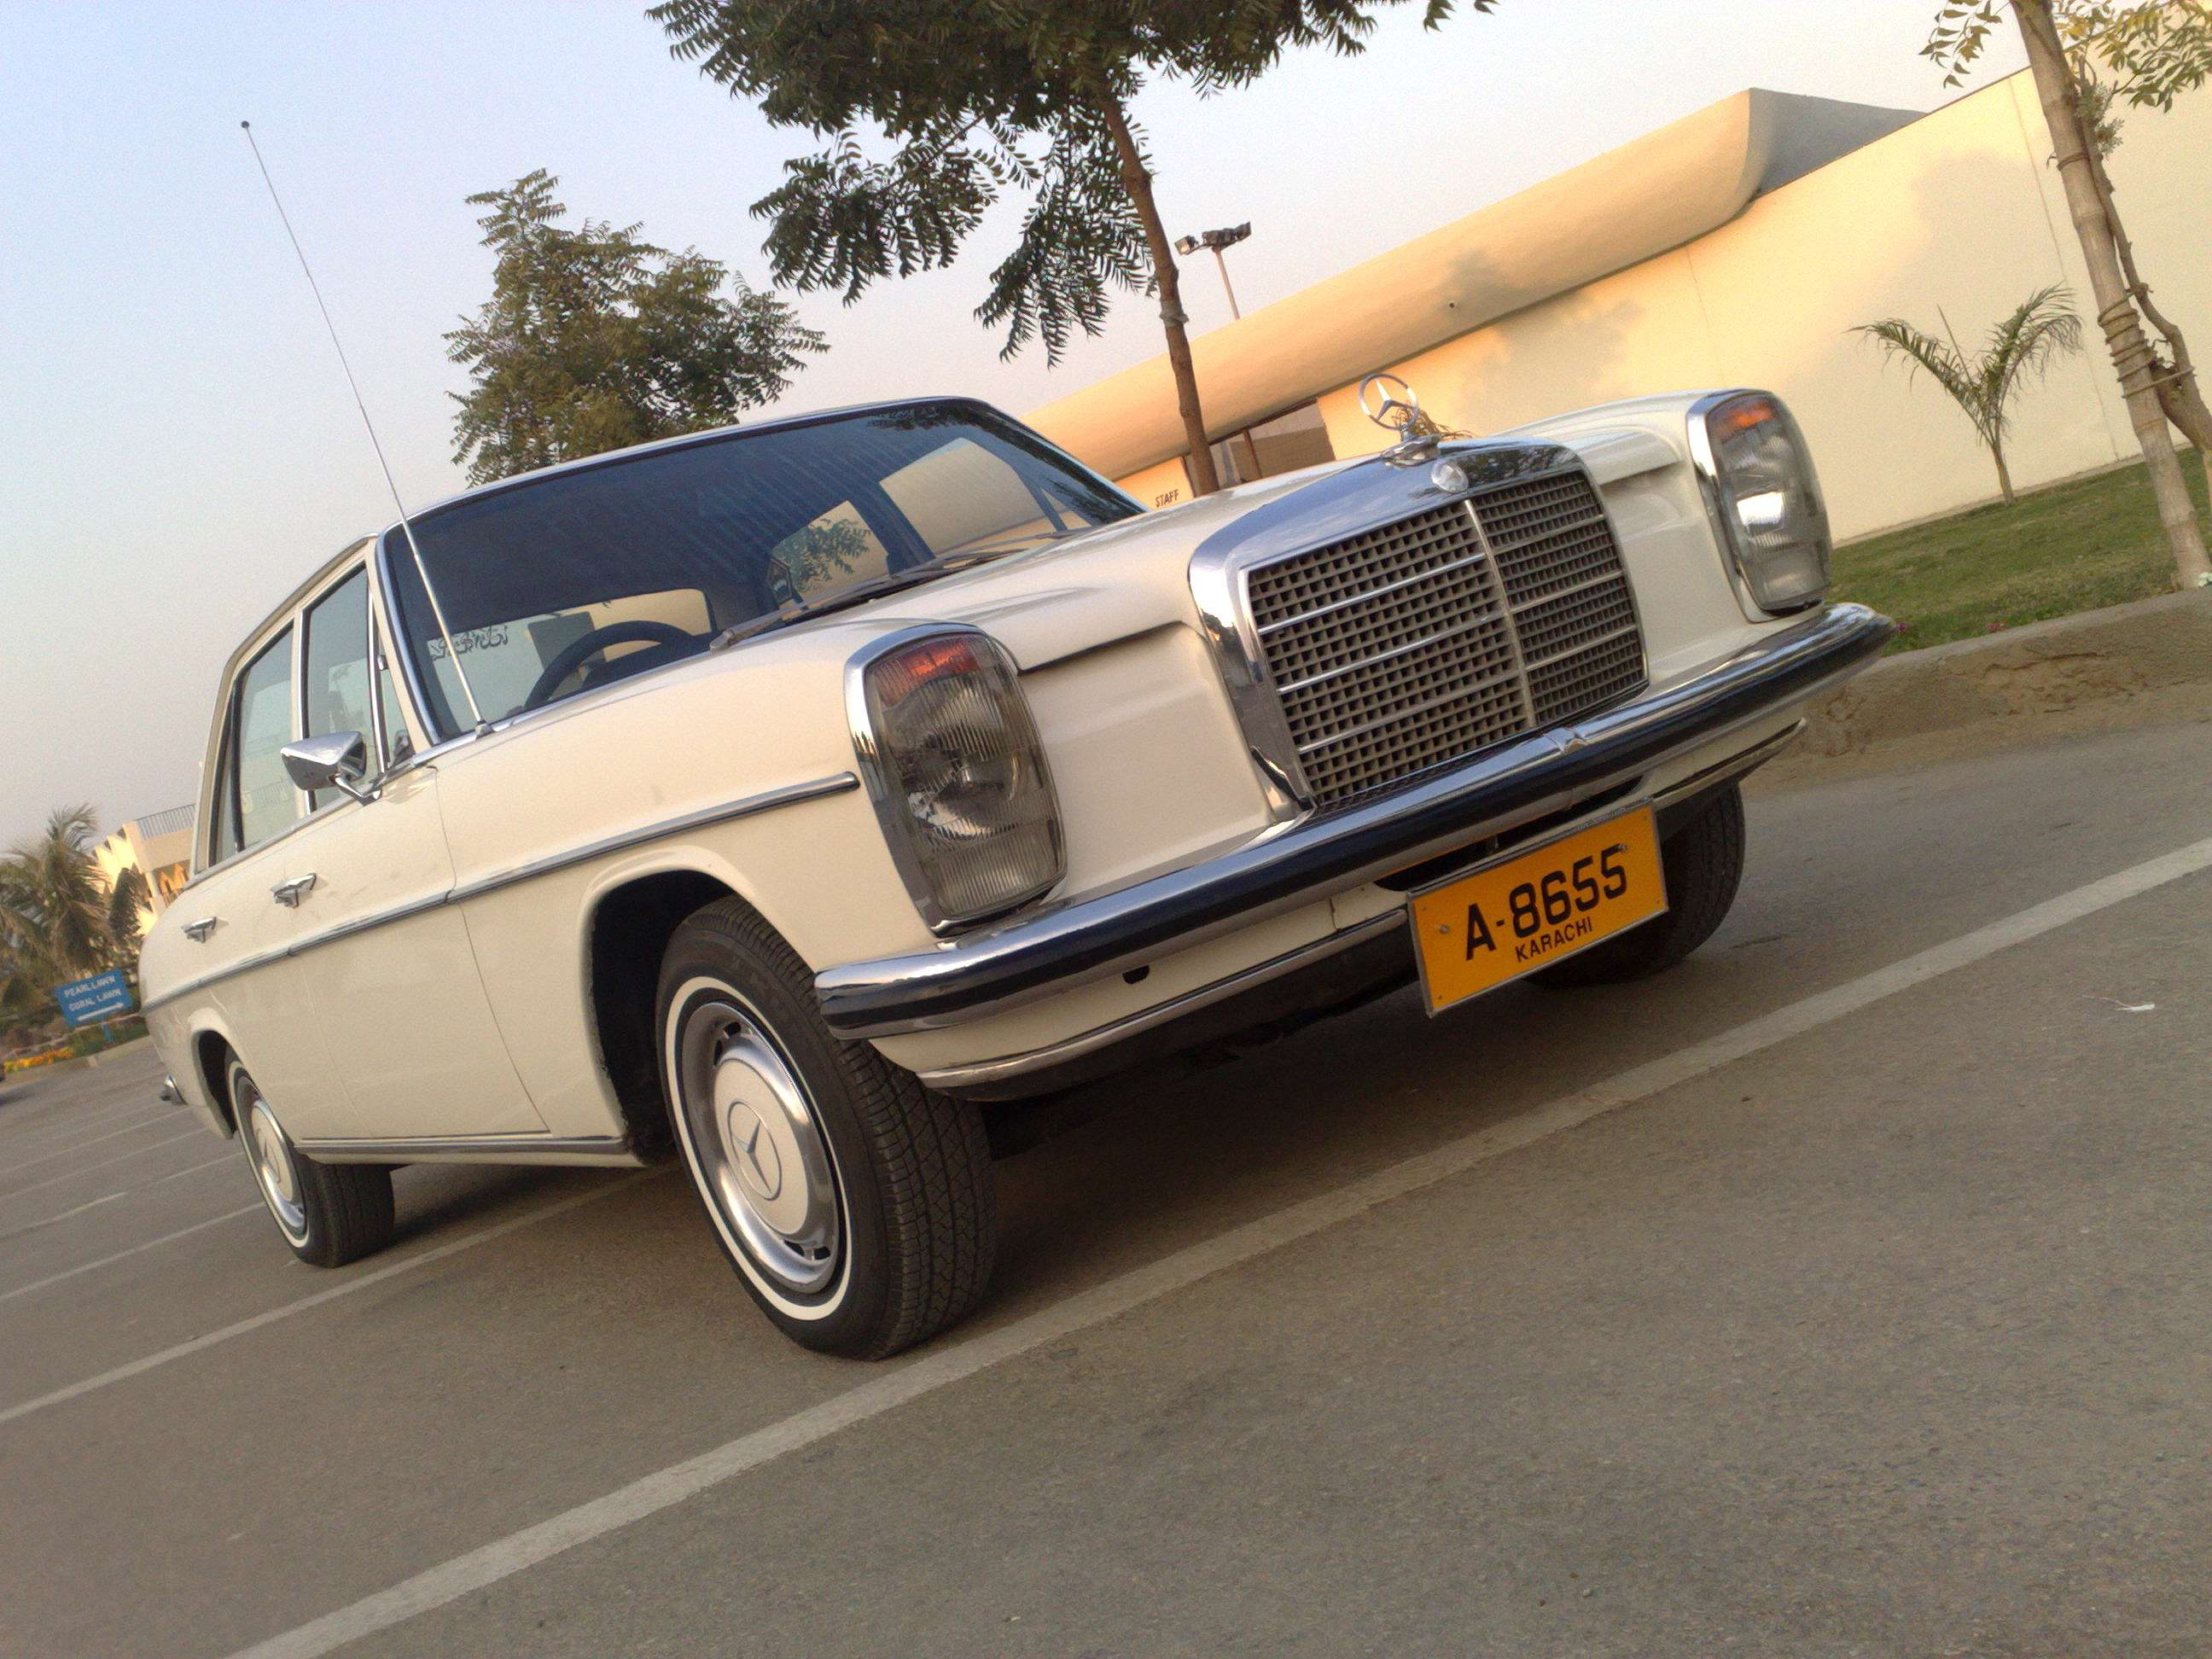 Mercedes benz e class 1972 of ykkocorp member ride 5211 for Mercedes benz membership